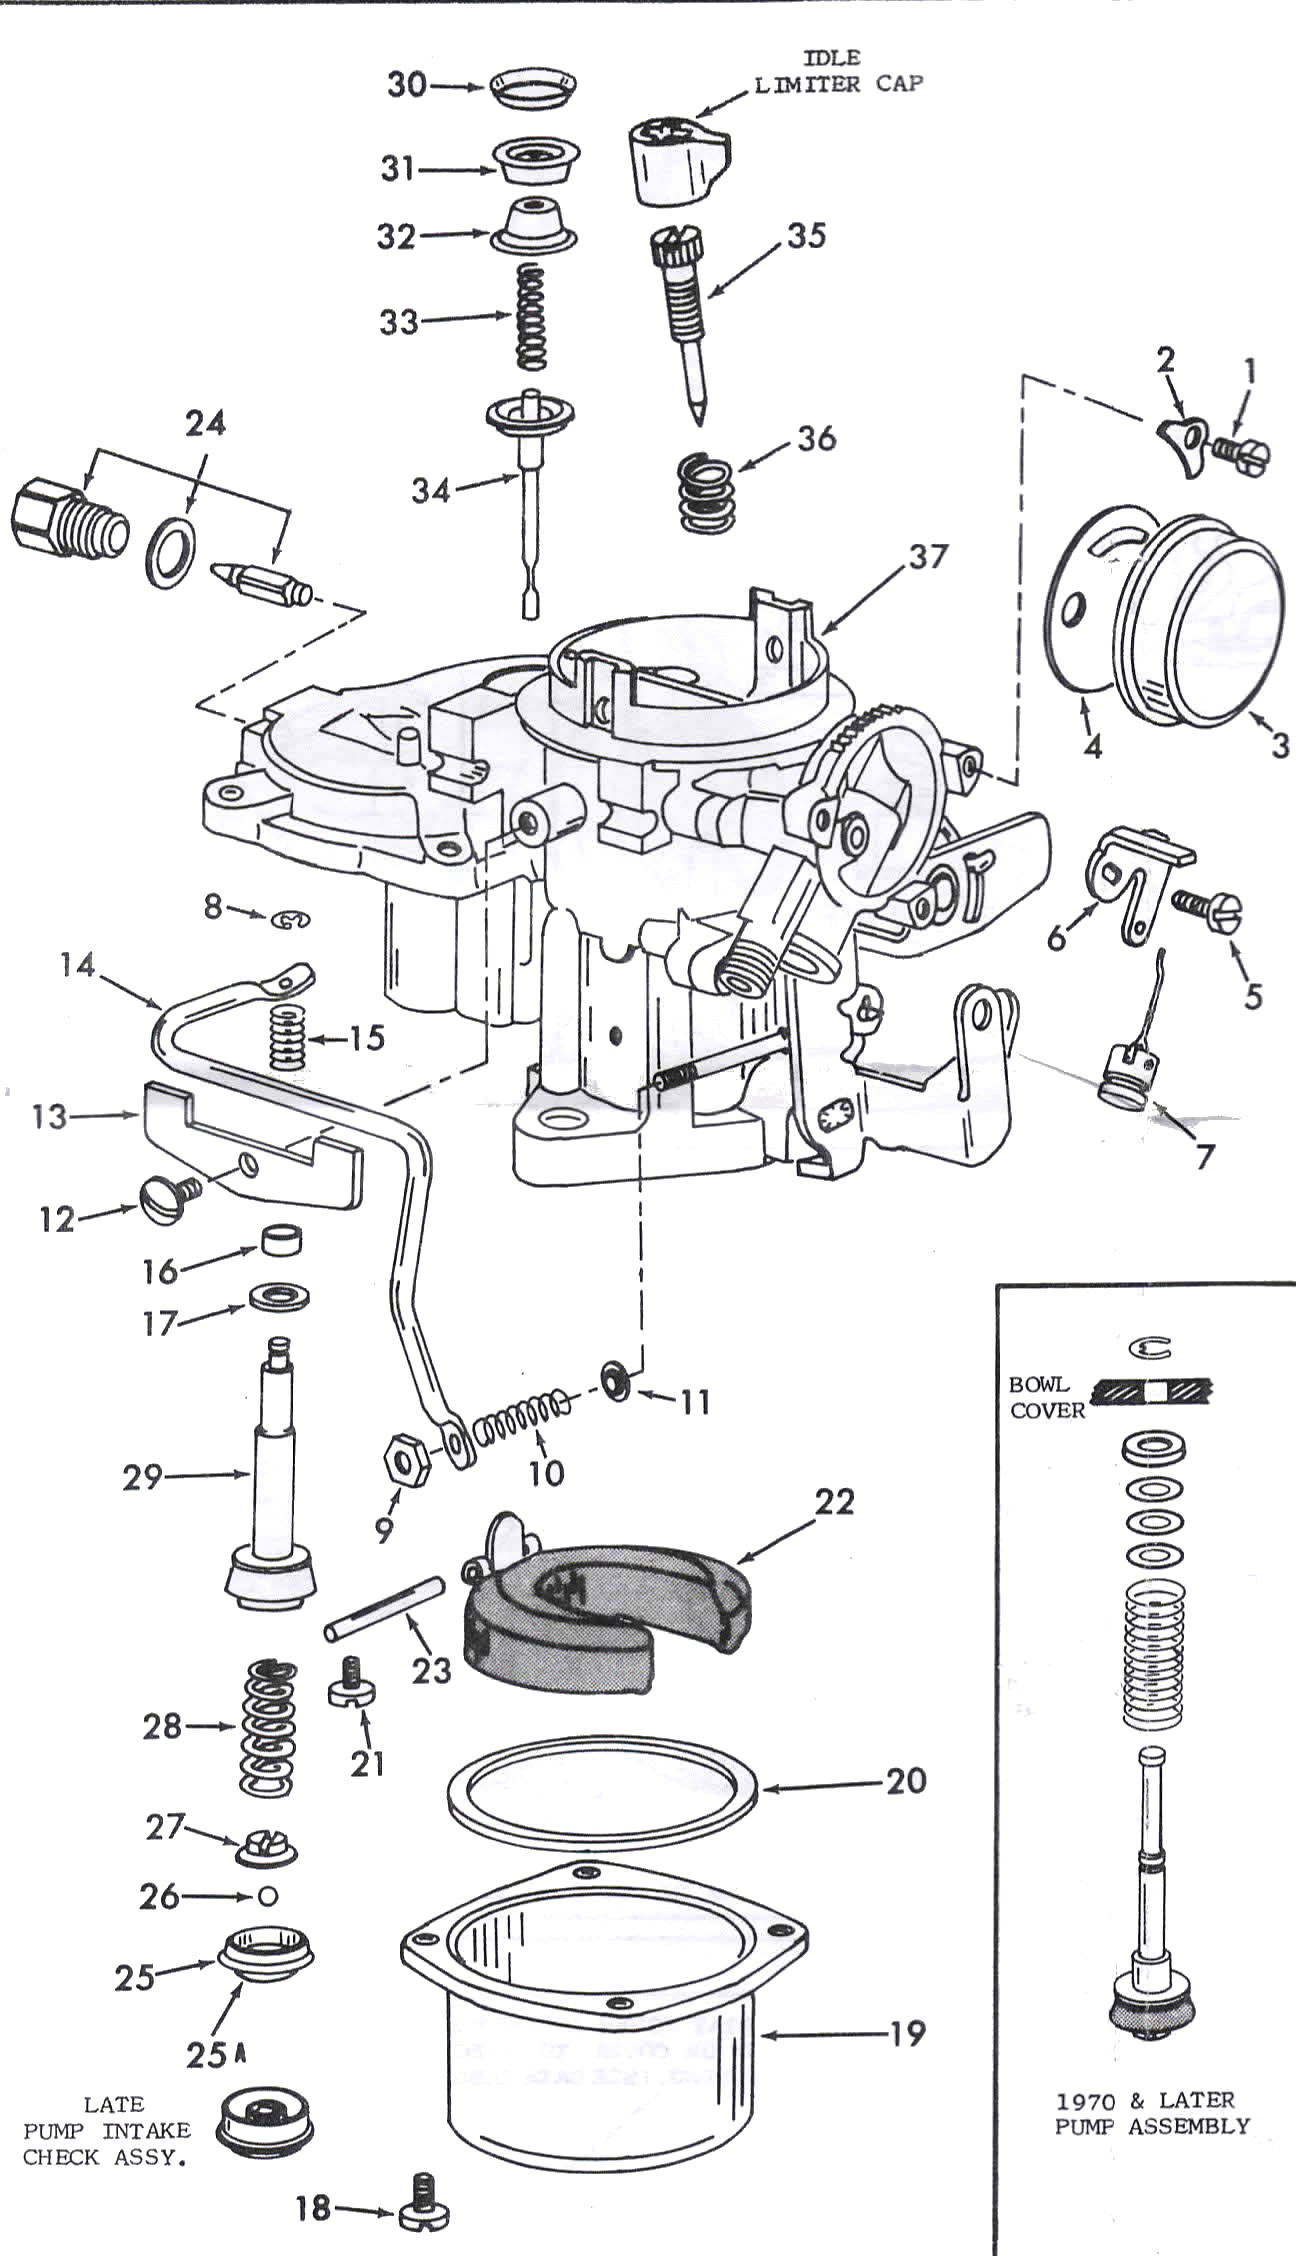 RBS Exploded View